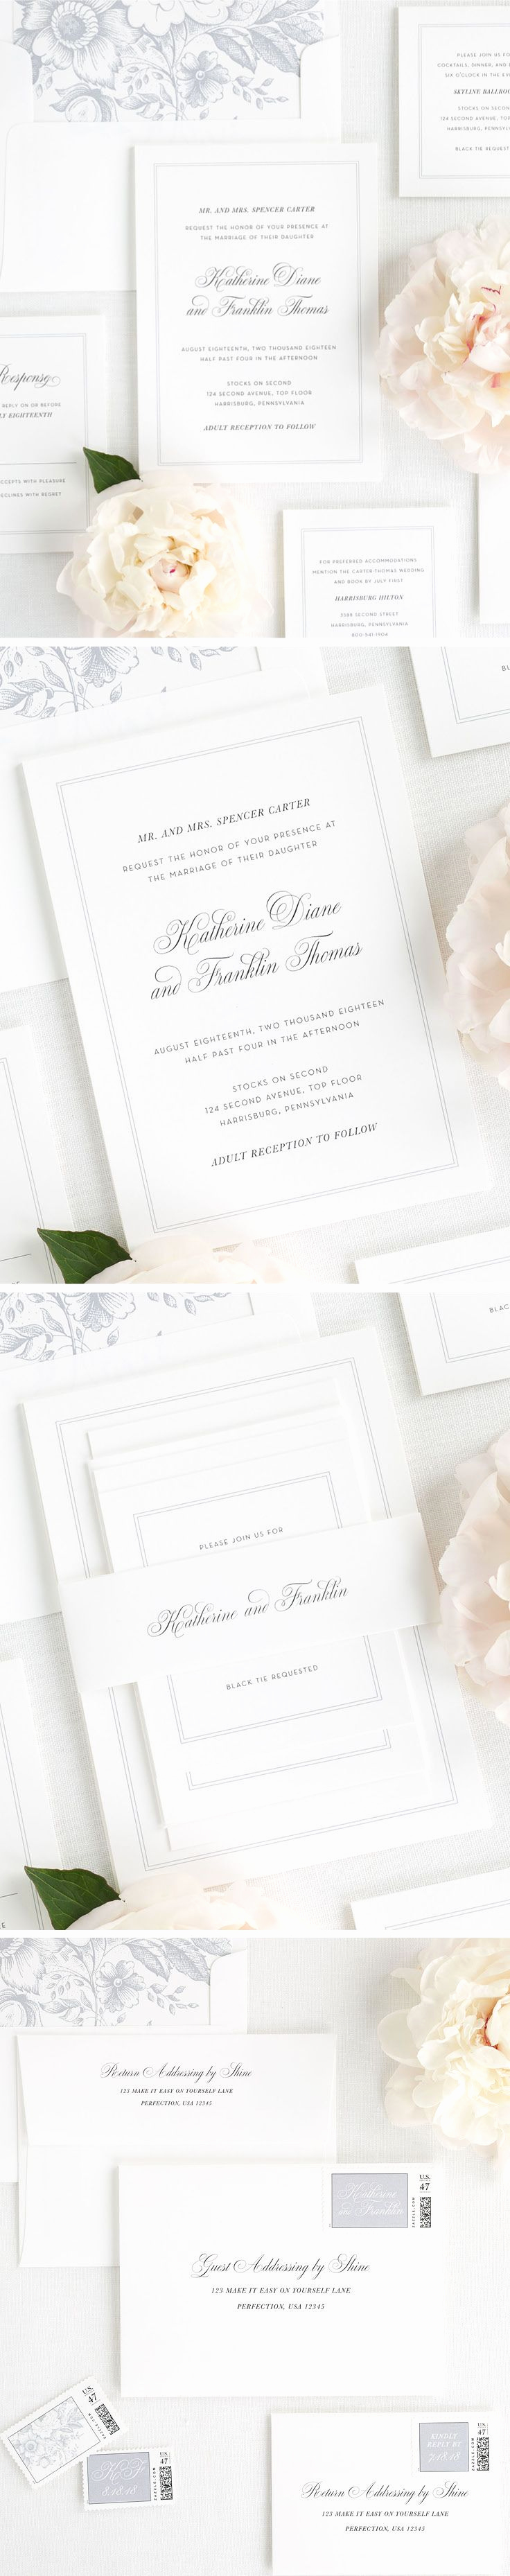 Simple Wedding Invitation Ideas Awesome Best 25 Simple Wedding Invitations Ideas On Pinterest